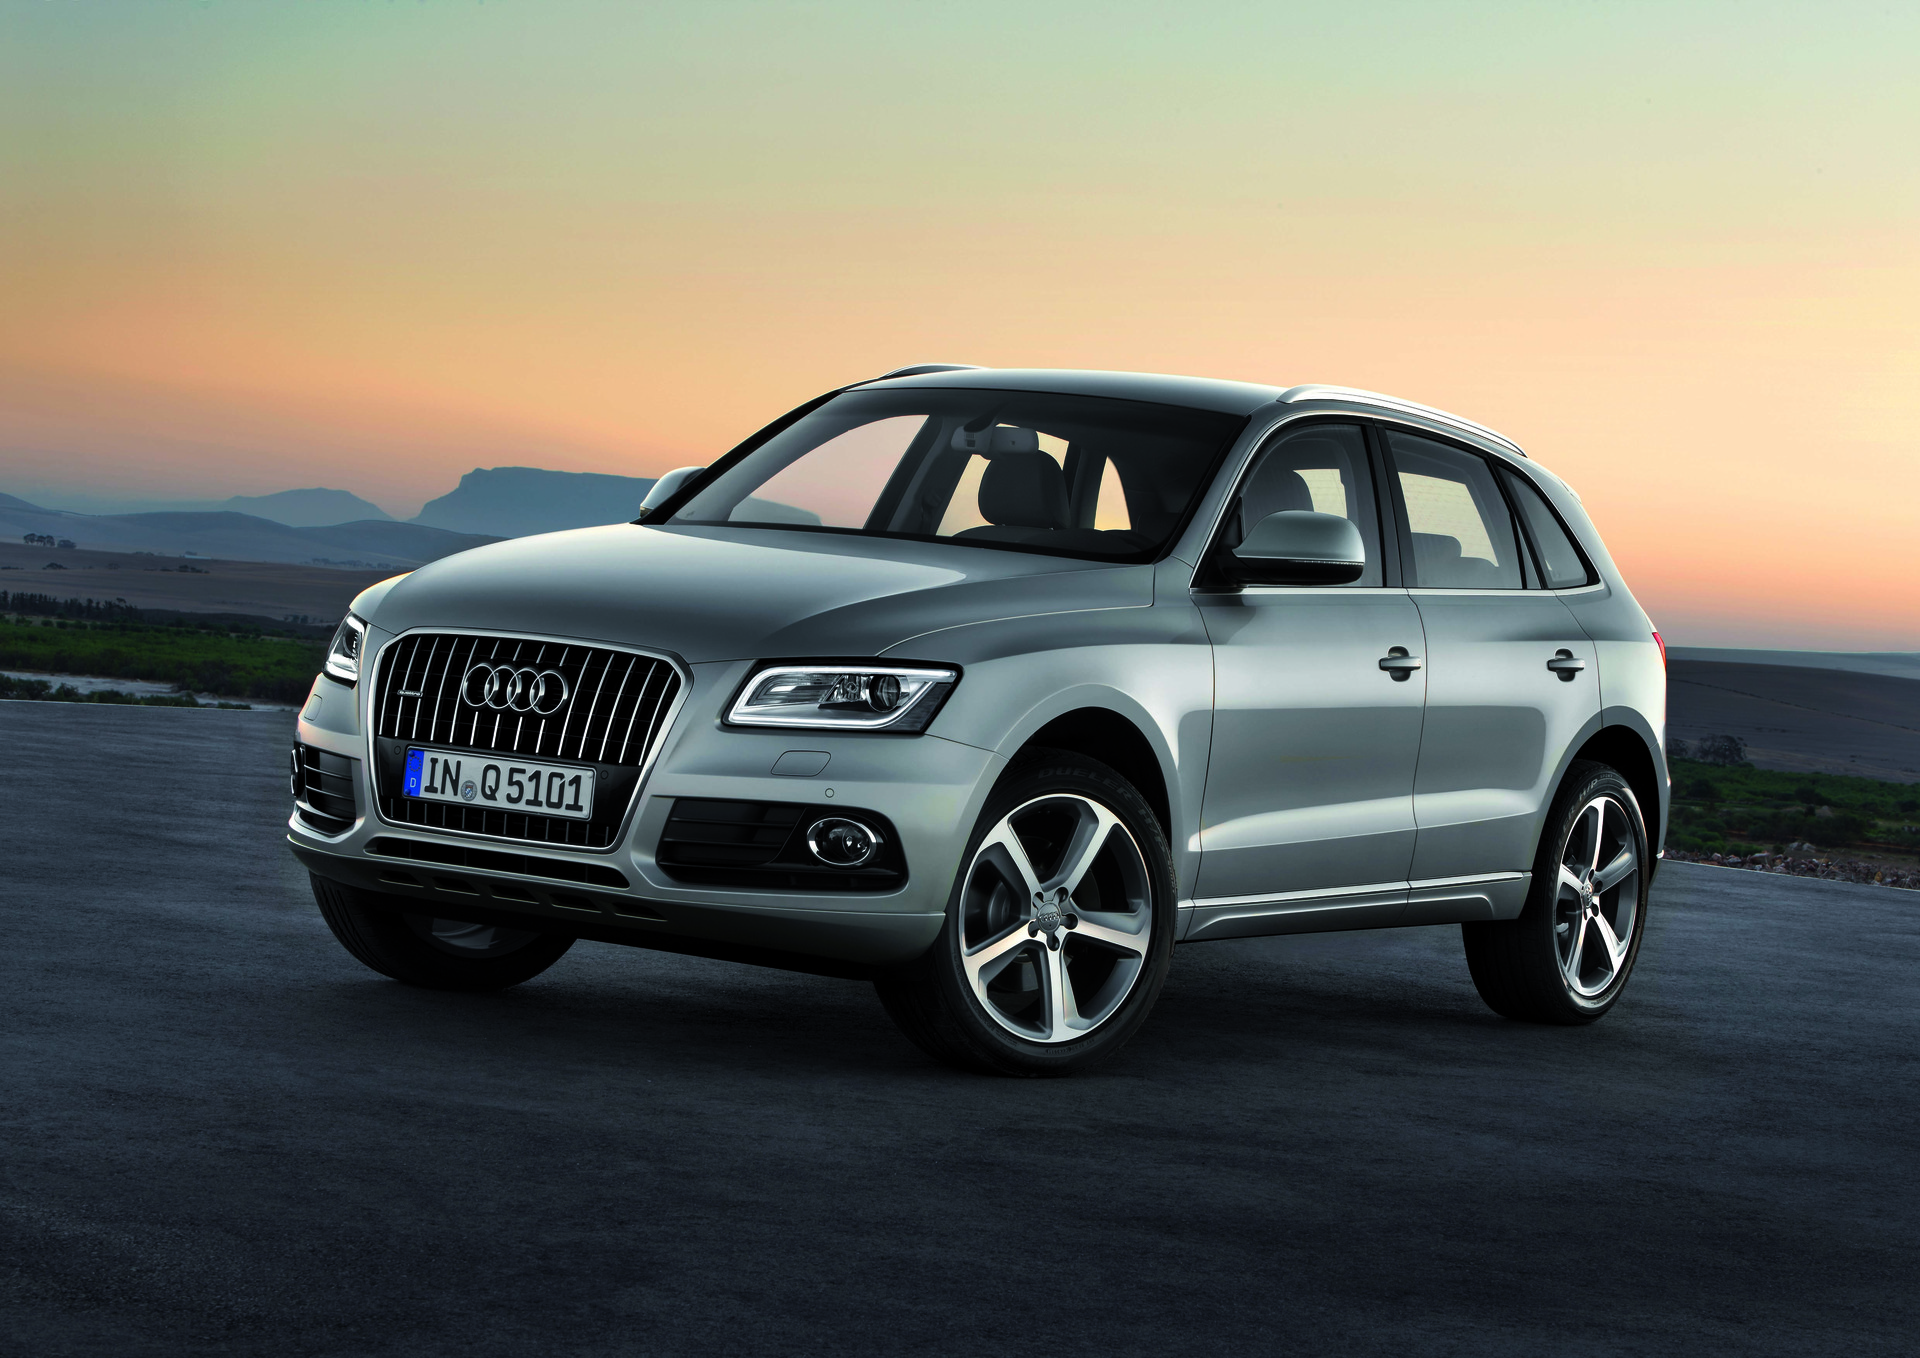 Used Audi Q5 For Sale >> 2016 Audi Q5 prices and expert review - The Car Connection